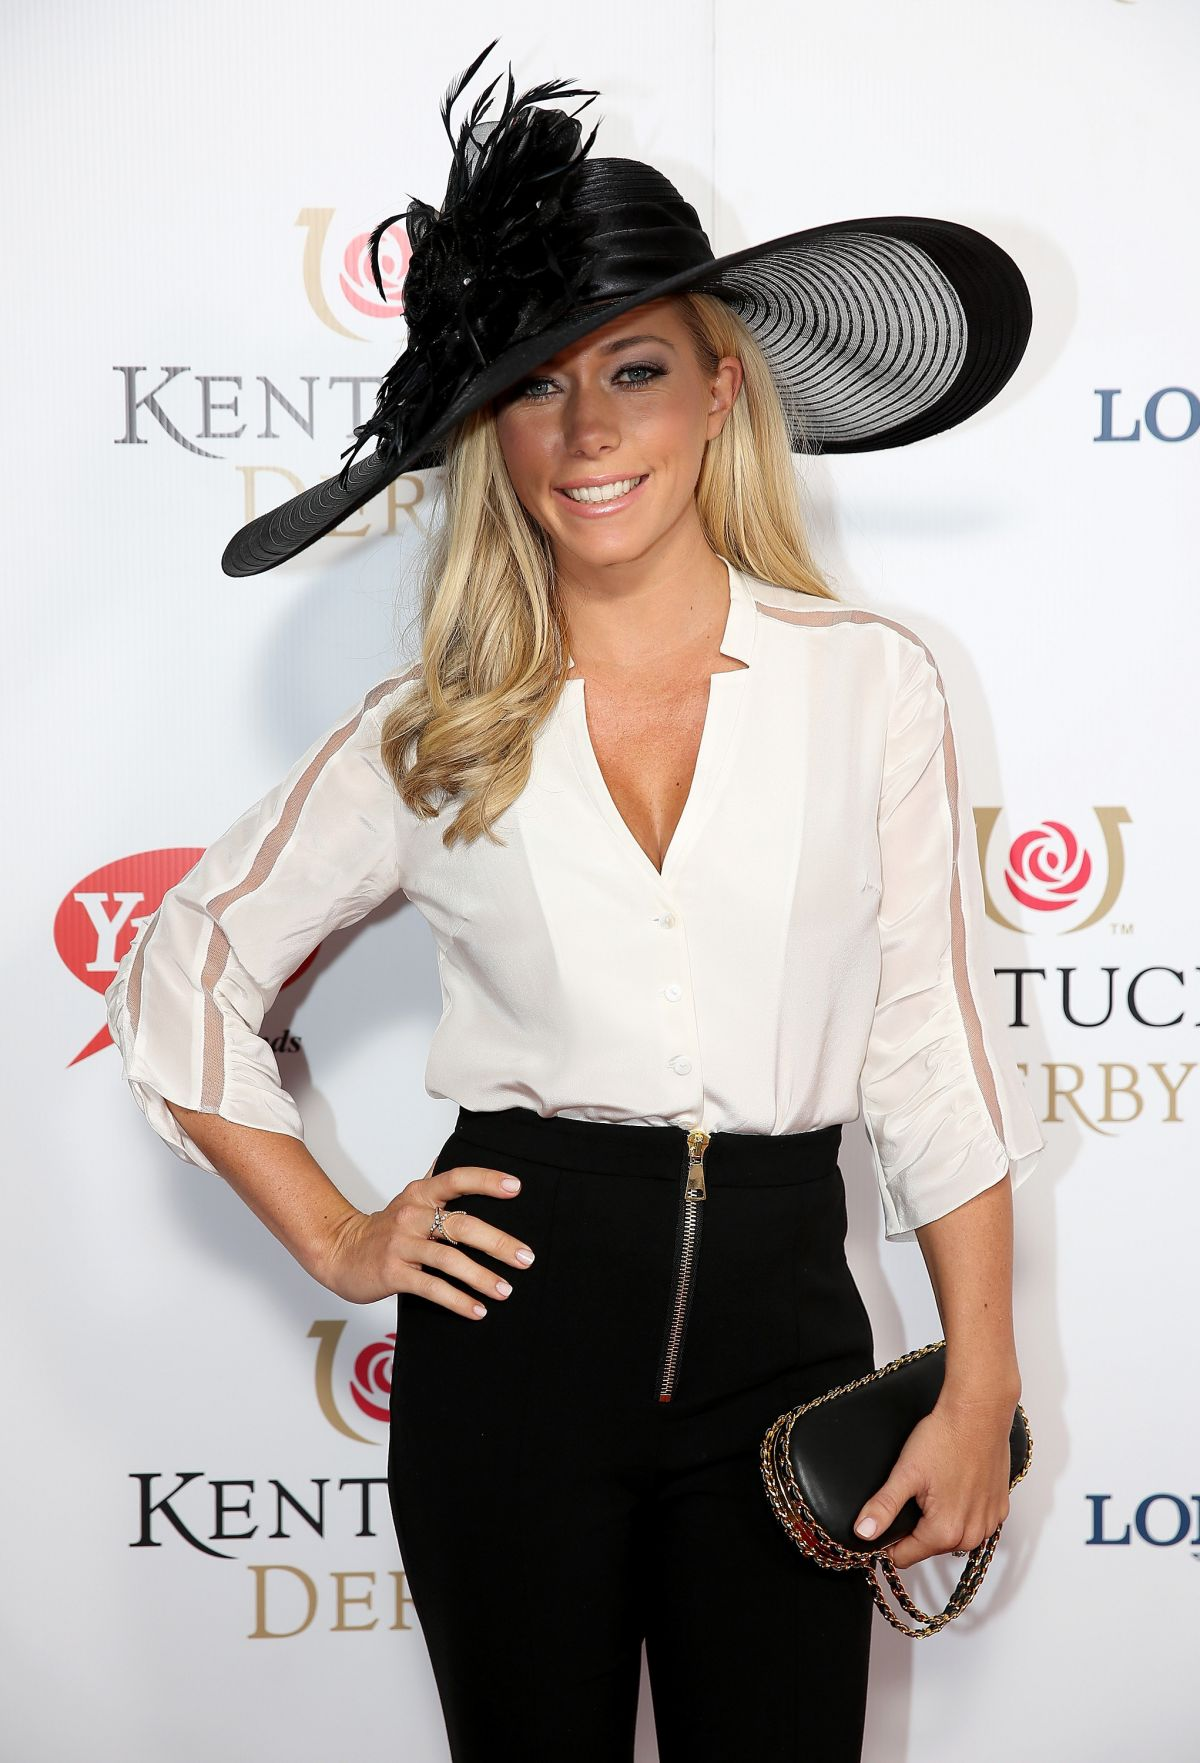 KENDRA WILKINSON at 141st Kentucky Derby at Churchill Downs